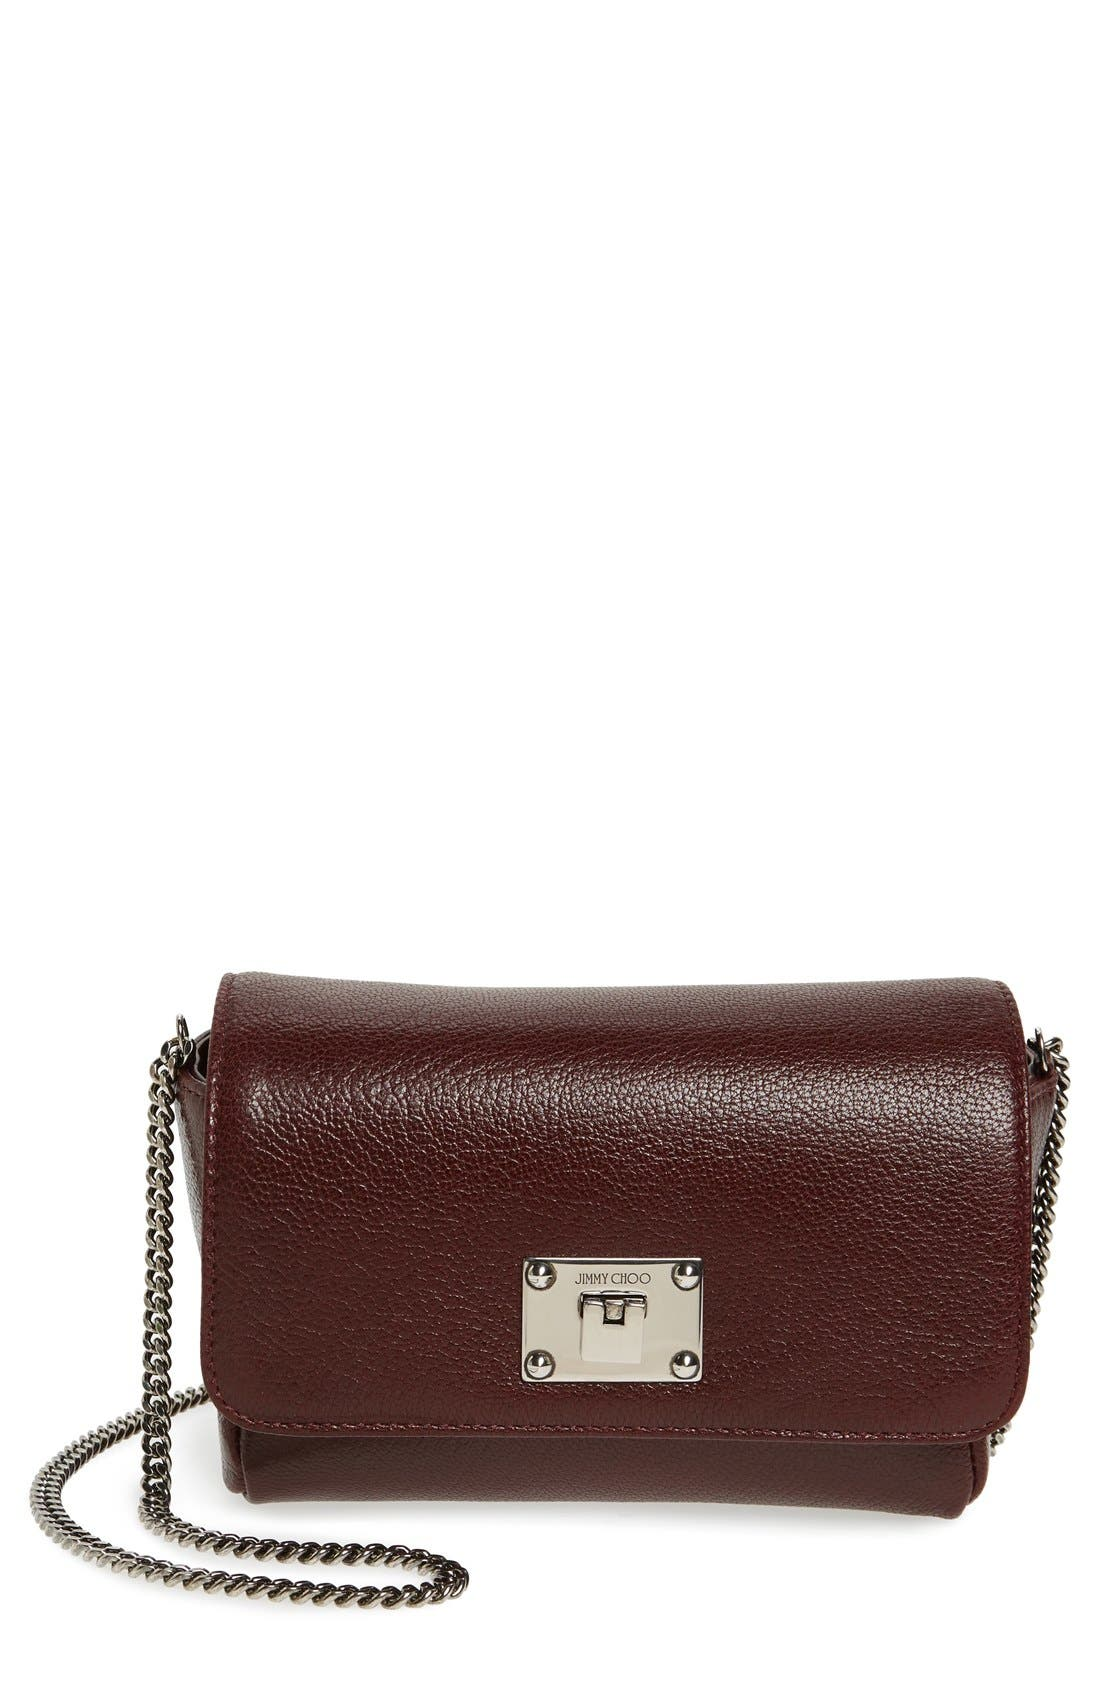 Alternate Image 1 Selected - Jimmy Choo 'Ruby' Grainy Leather Clutch